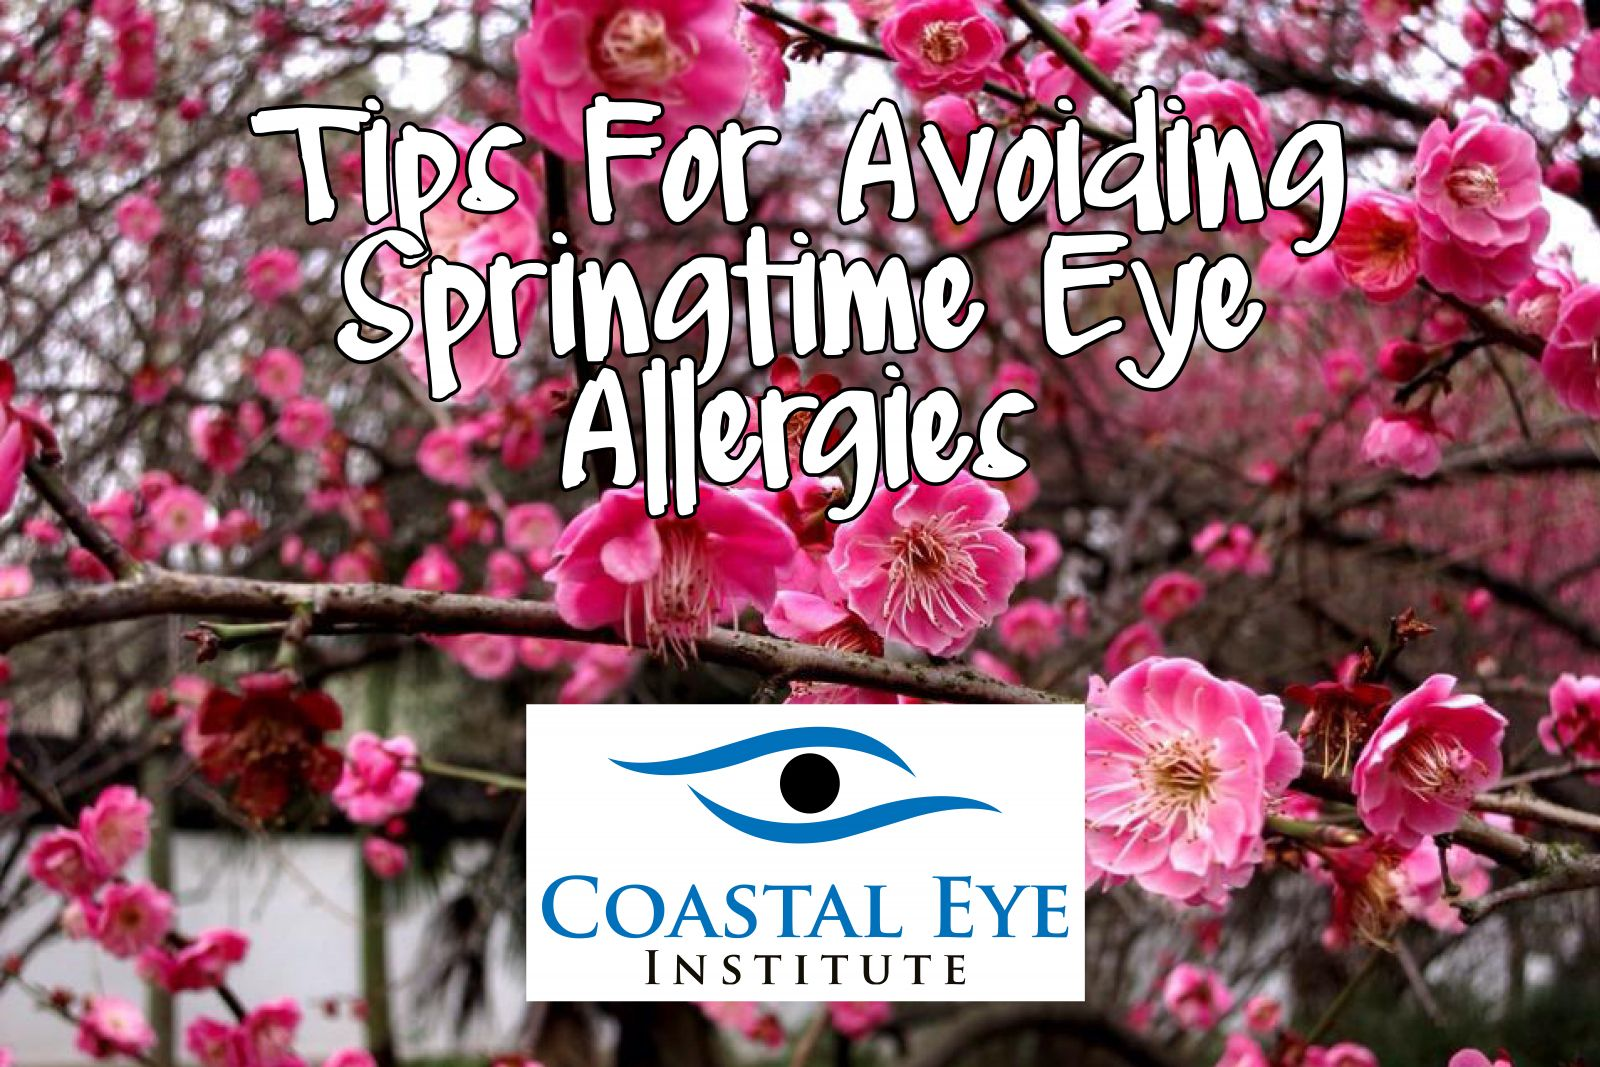 Tips for avoiding springtime eye allergies image